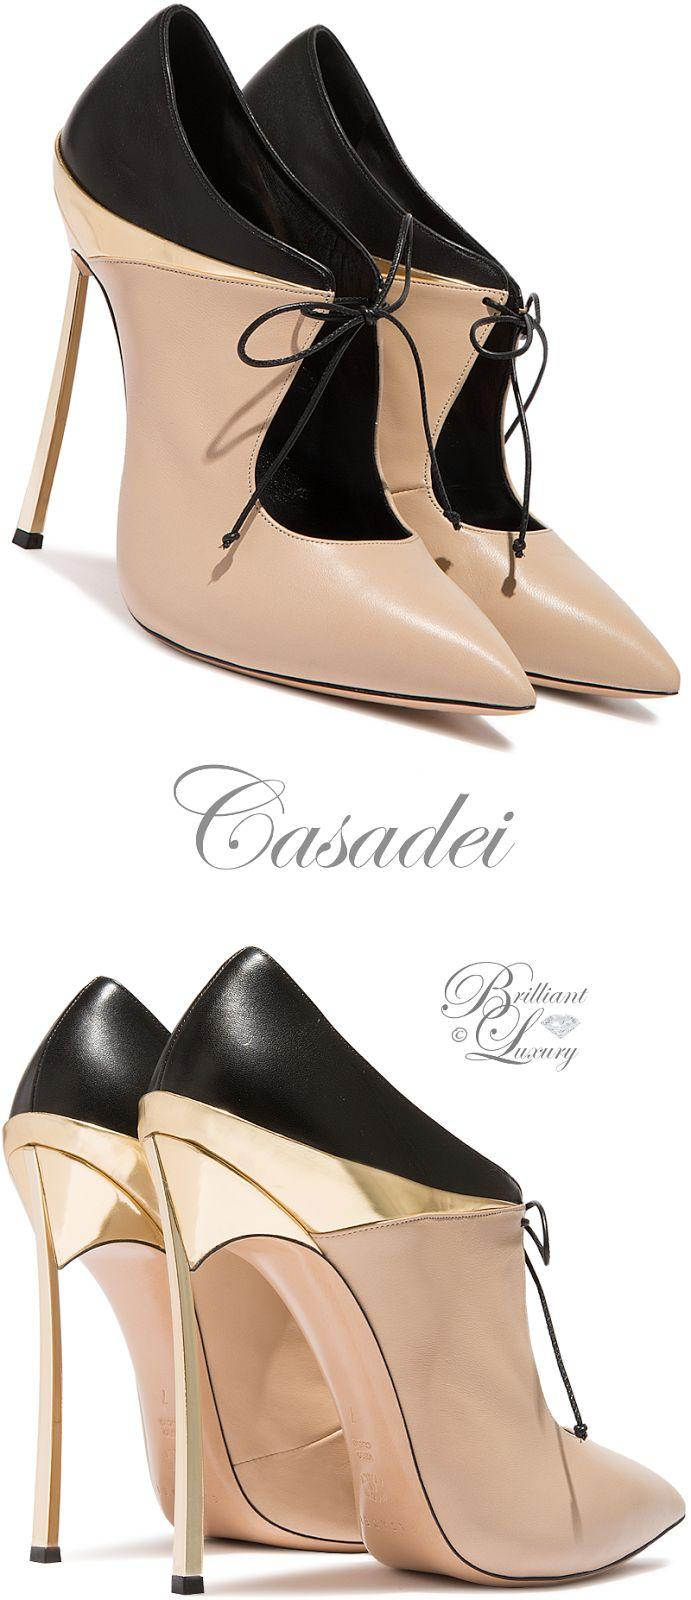 Wedding - CASADEI